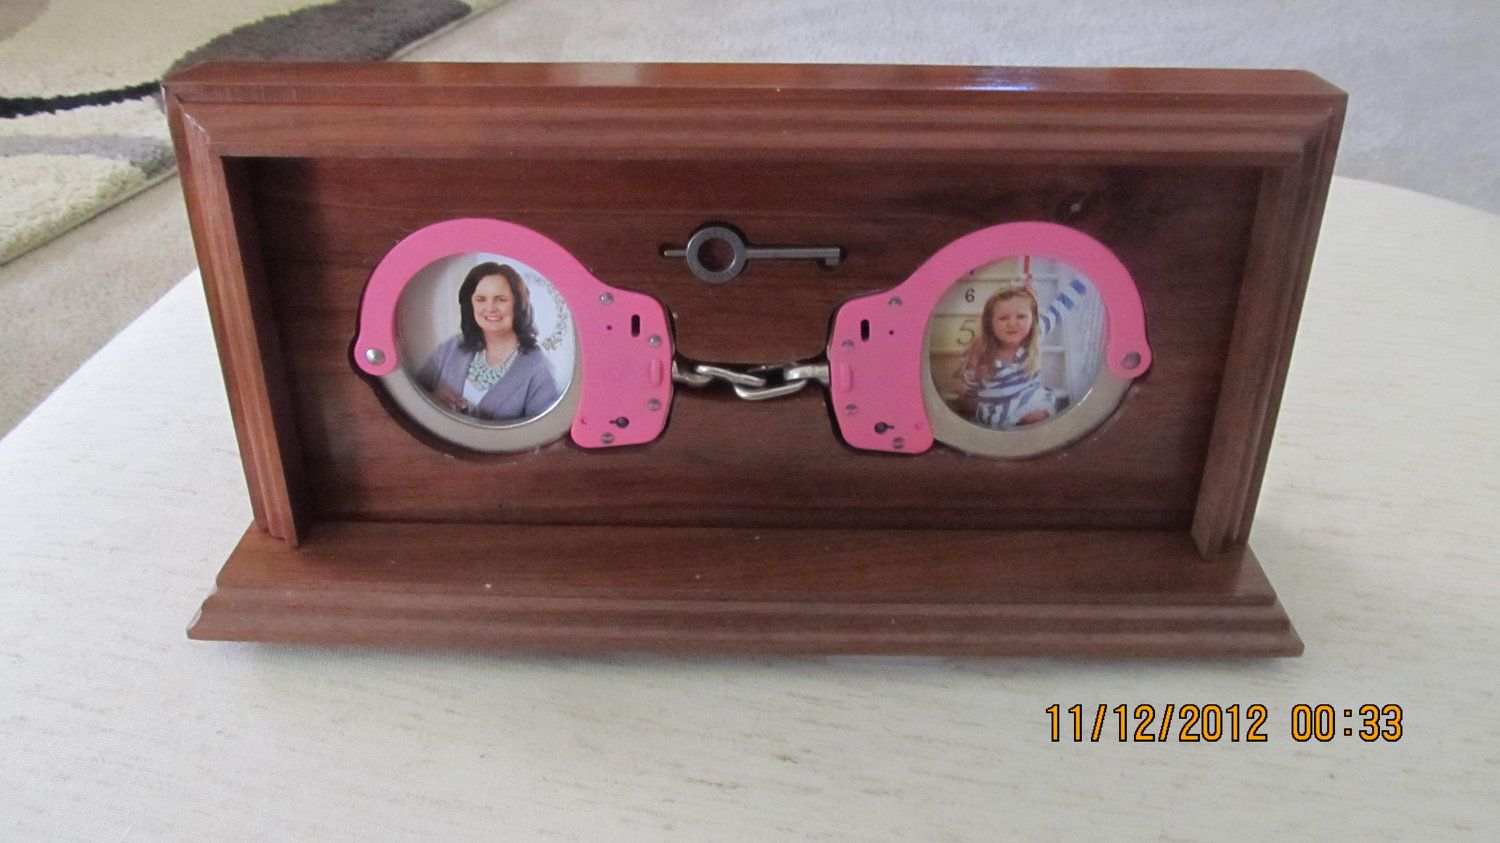 Handcuff desk set picture frame by cuffems on etsy 7500 might handcuff desk set picture frame by cuffems on etsy 7500 might as well since i jeuxipadfo Choice Image